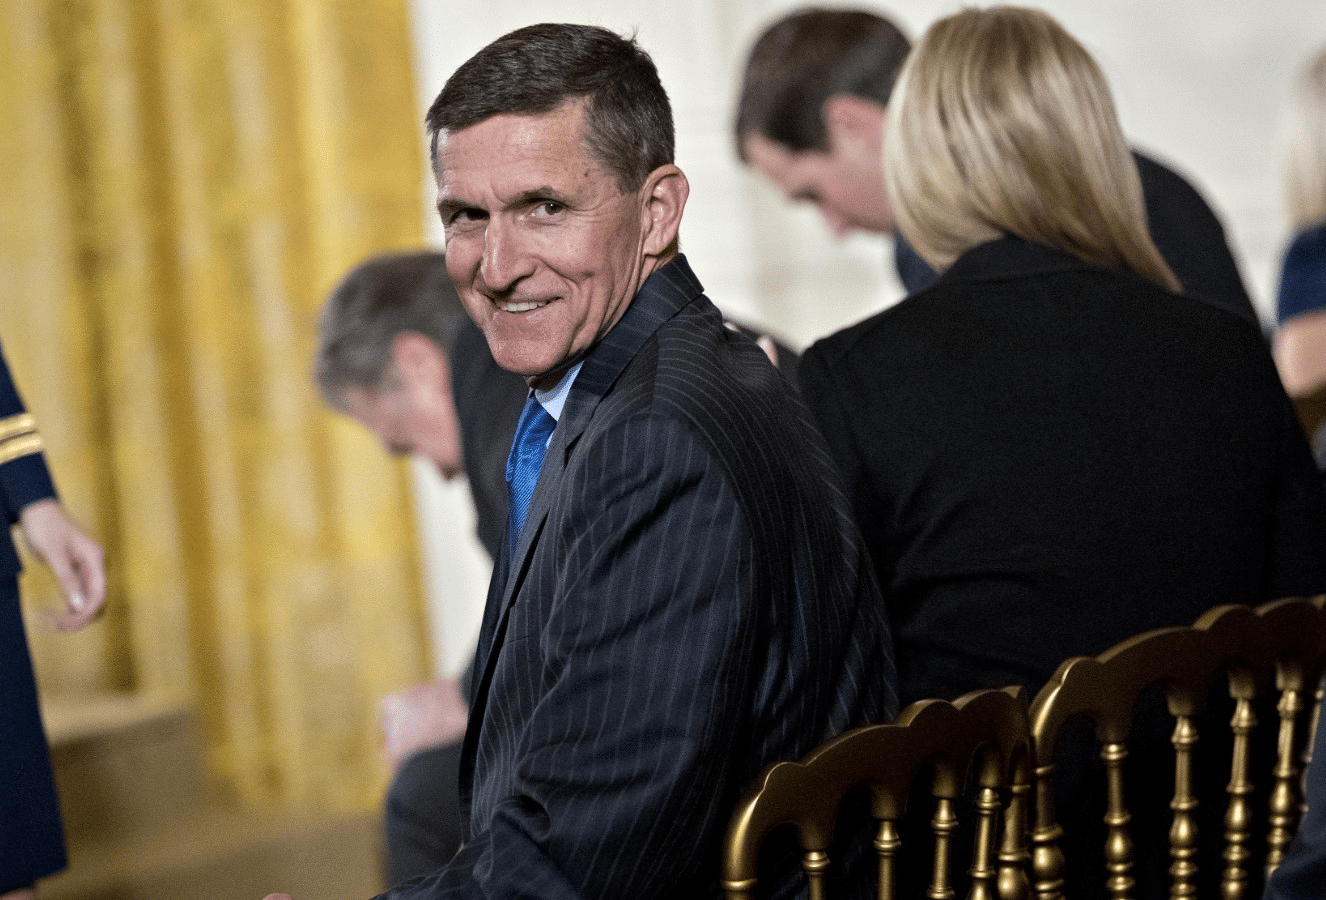 Liberals MELTDOWN Over Flynn Exoneration